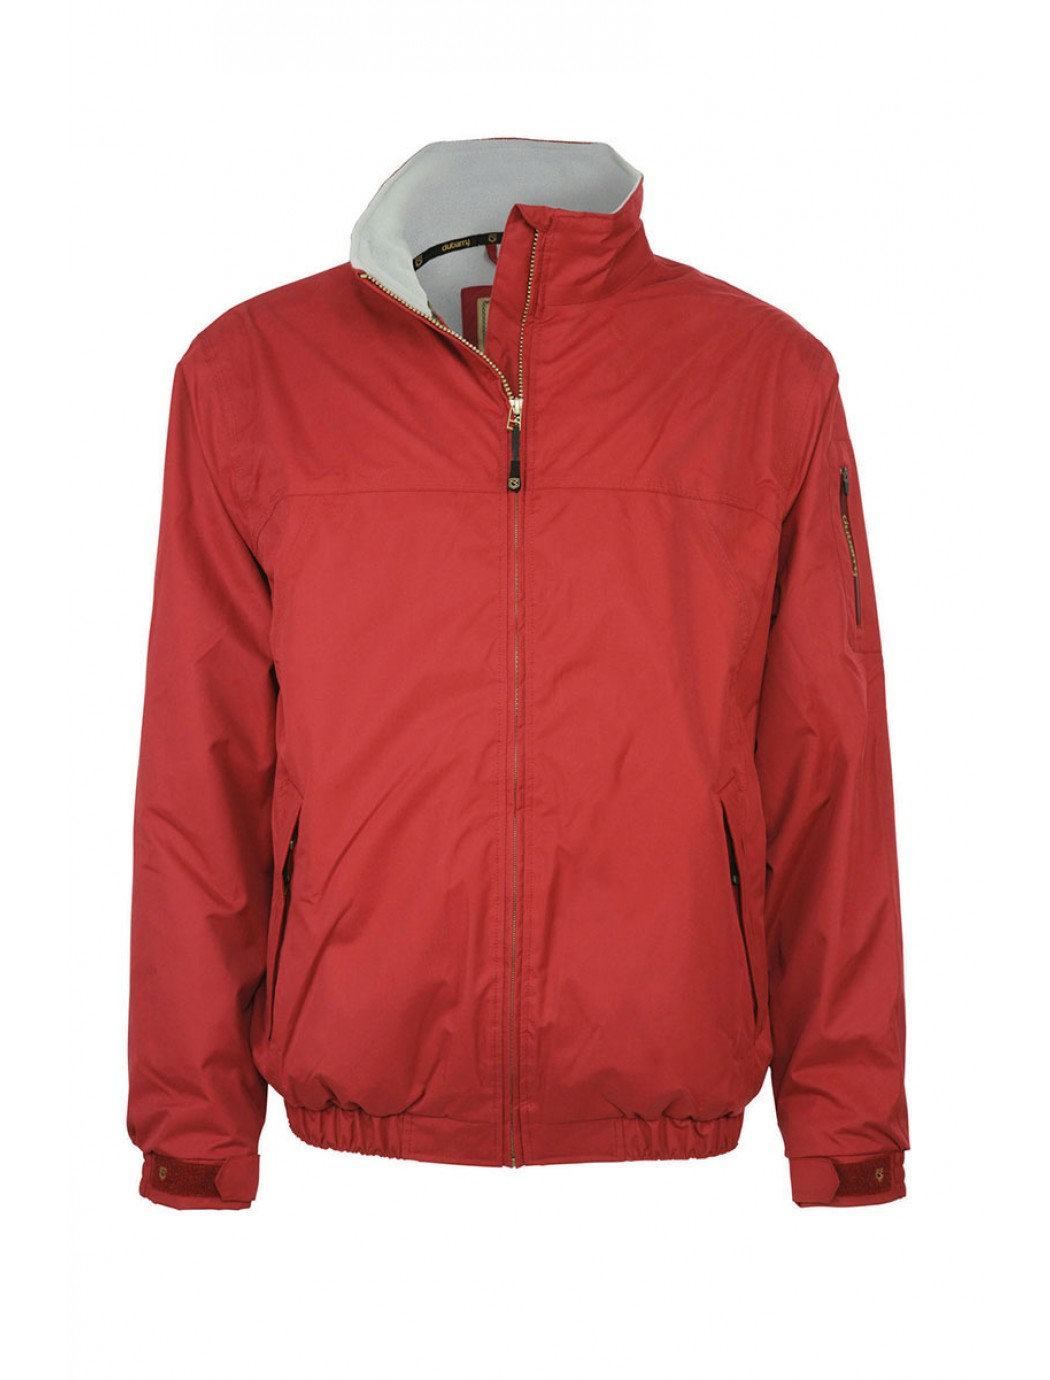 storm-mens-jackets-flag-red-grey